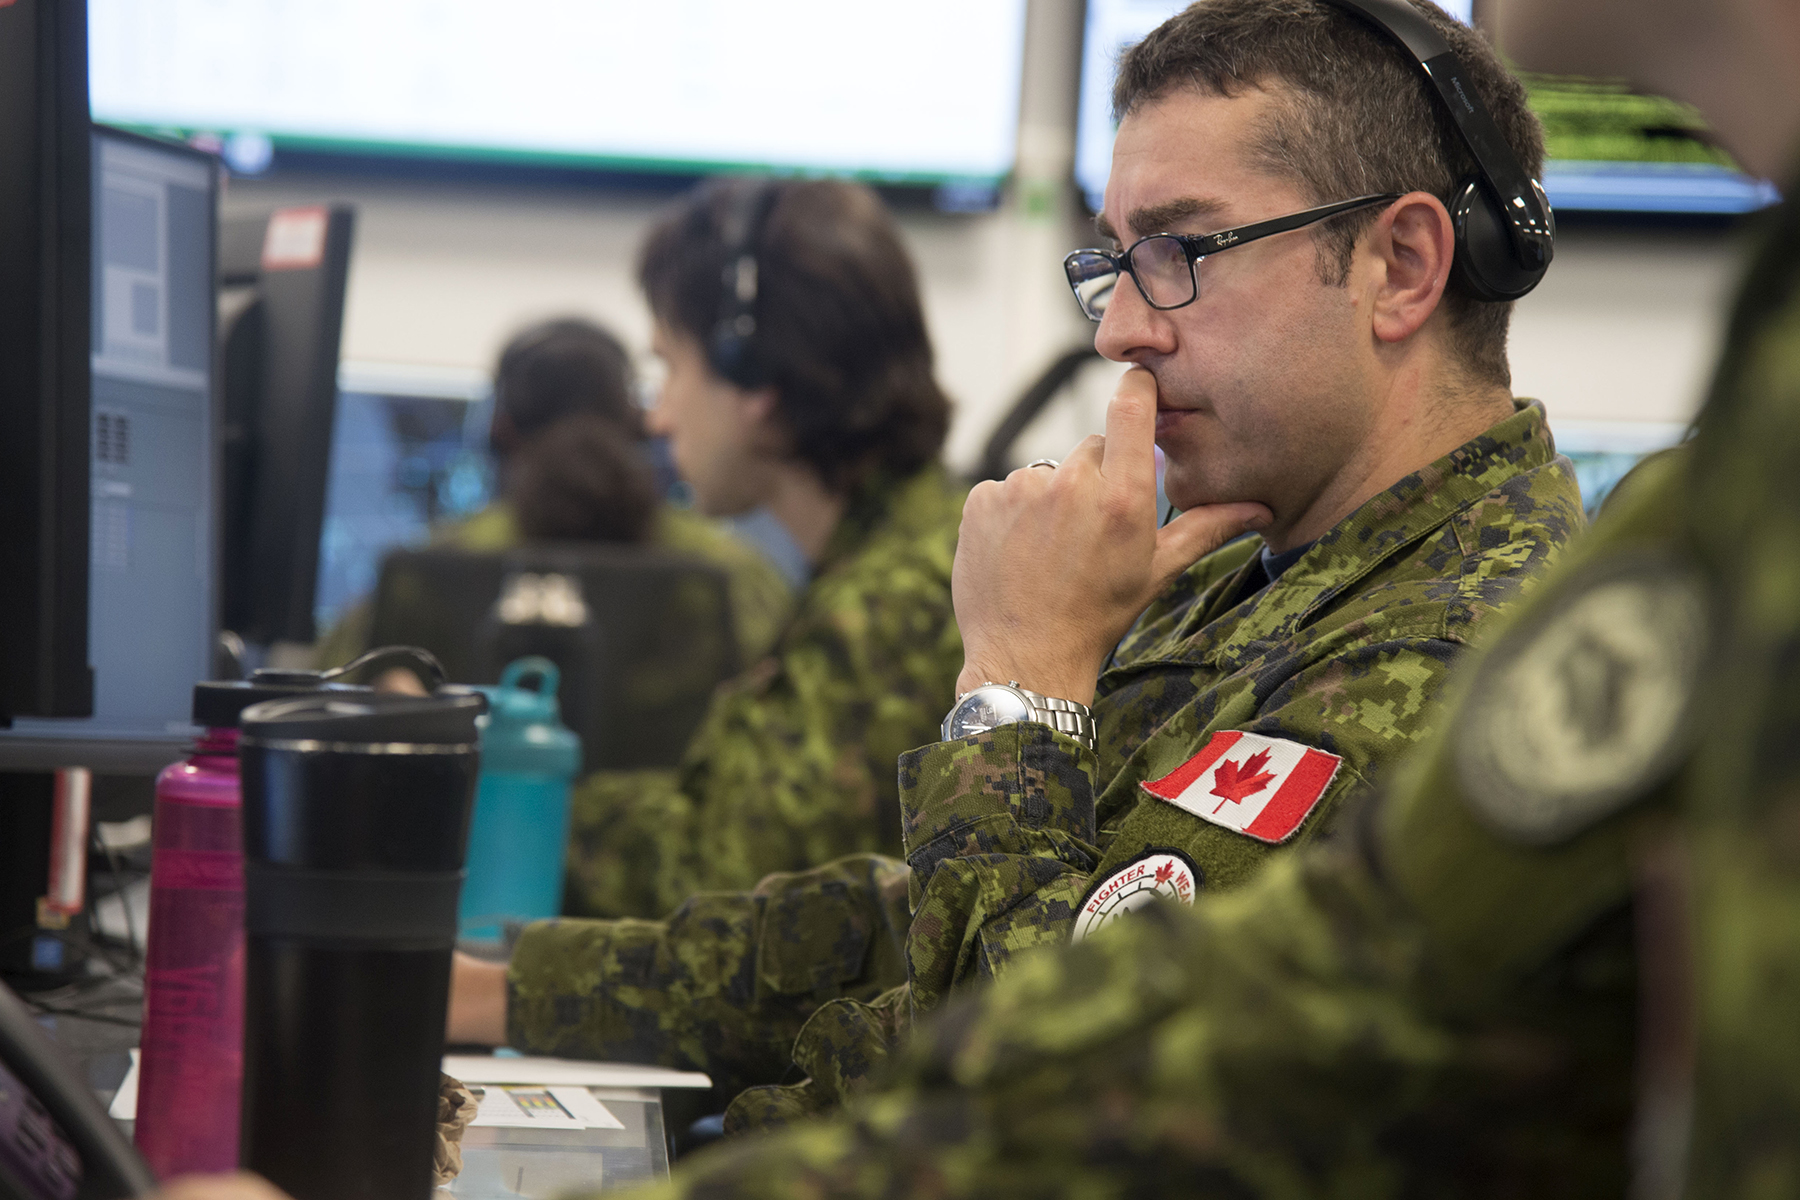 Major Andrew Lunn, mission crew commander, takes part in Exercise Coalition Virtual Flag 19-4, a worldwide synthetic training exercise replicating major battlefield operations that took place from September 9 to 20, 2019, at the exercise's 22 Wing North Bay, Ontario, location. PHOTO: Corporal Robert Ouellette, NB01-2019-233-4